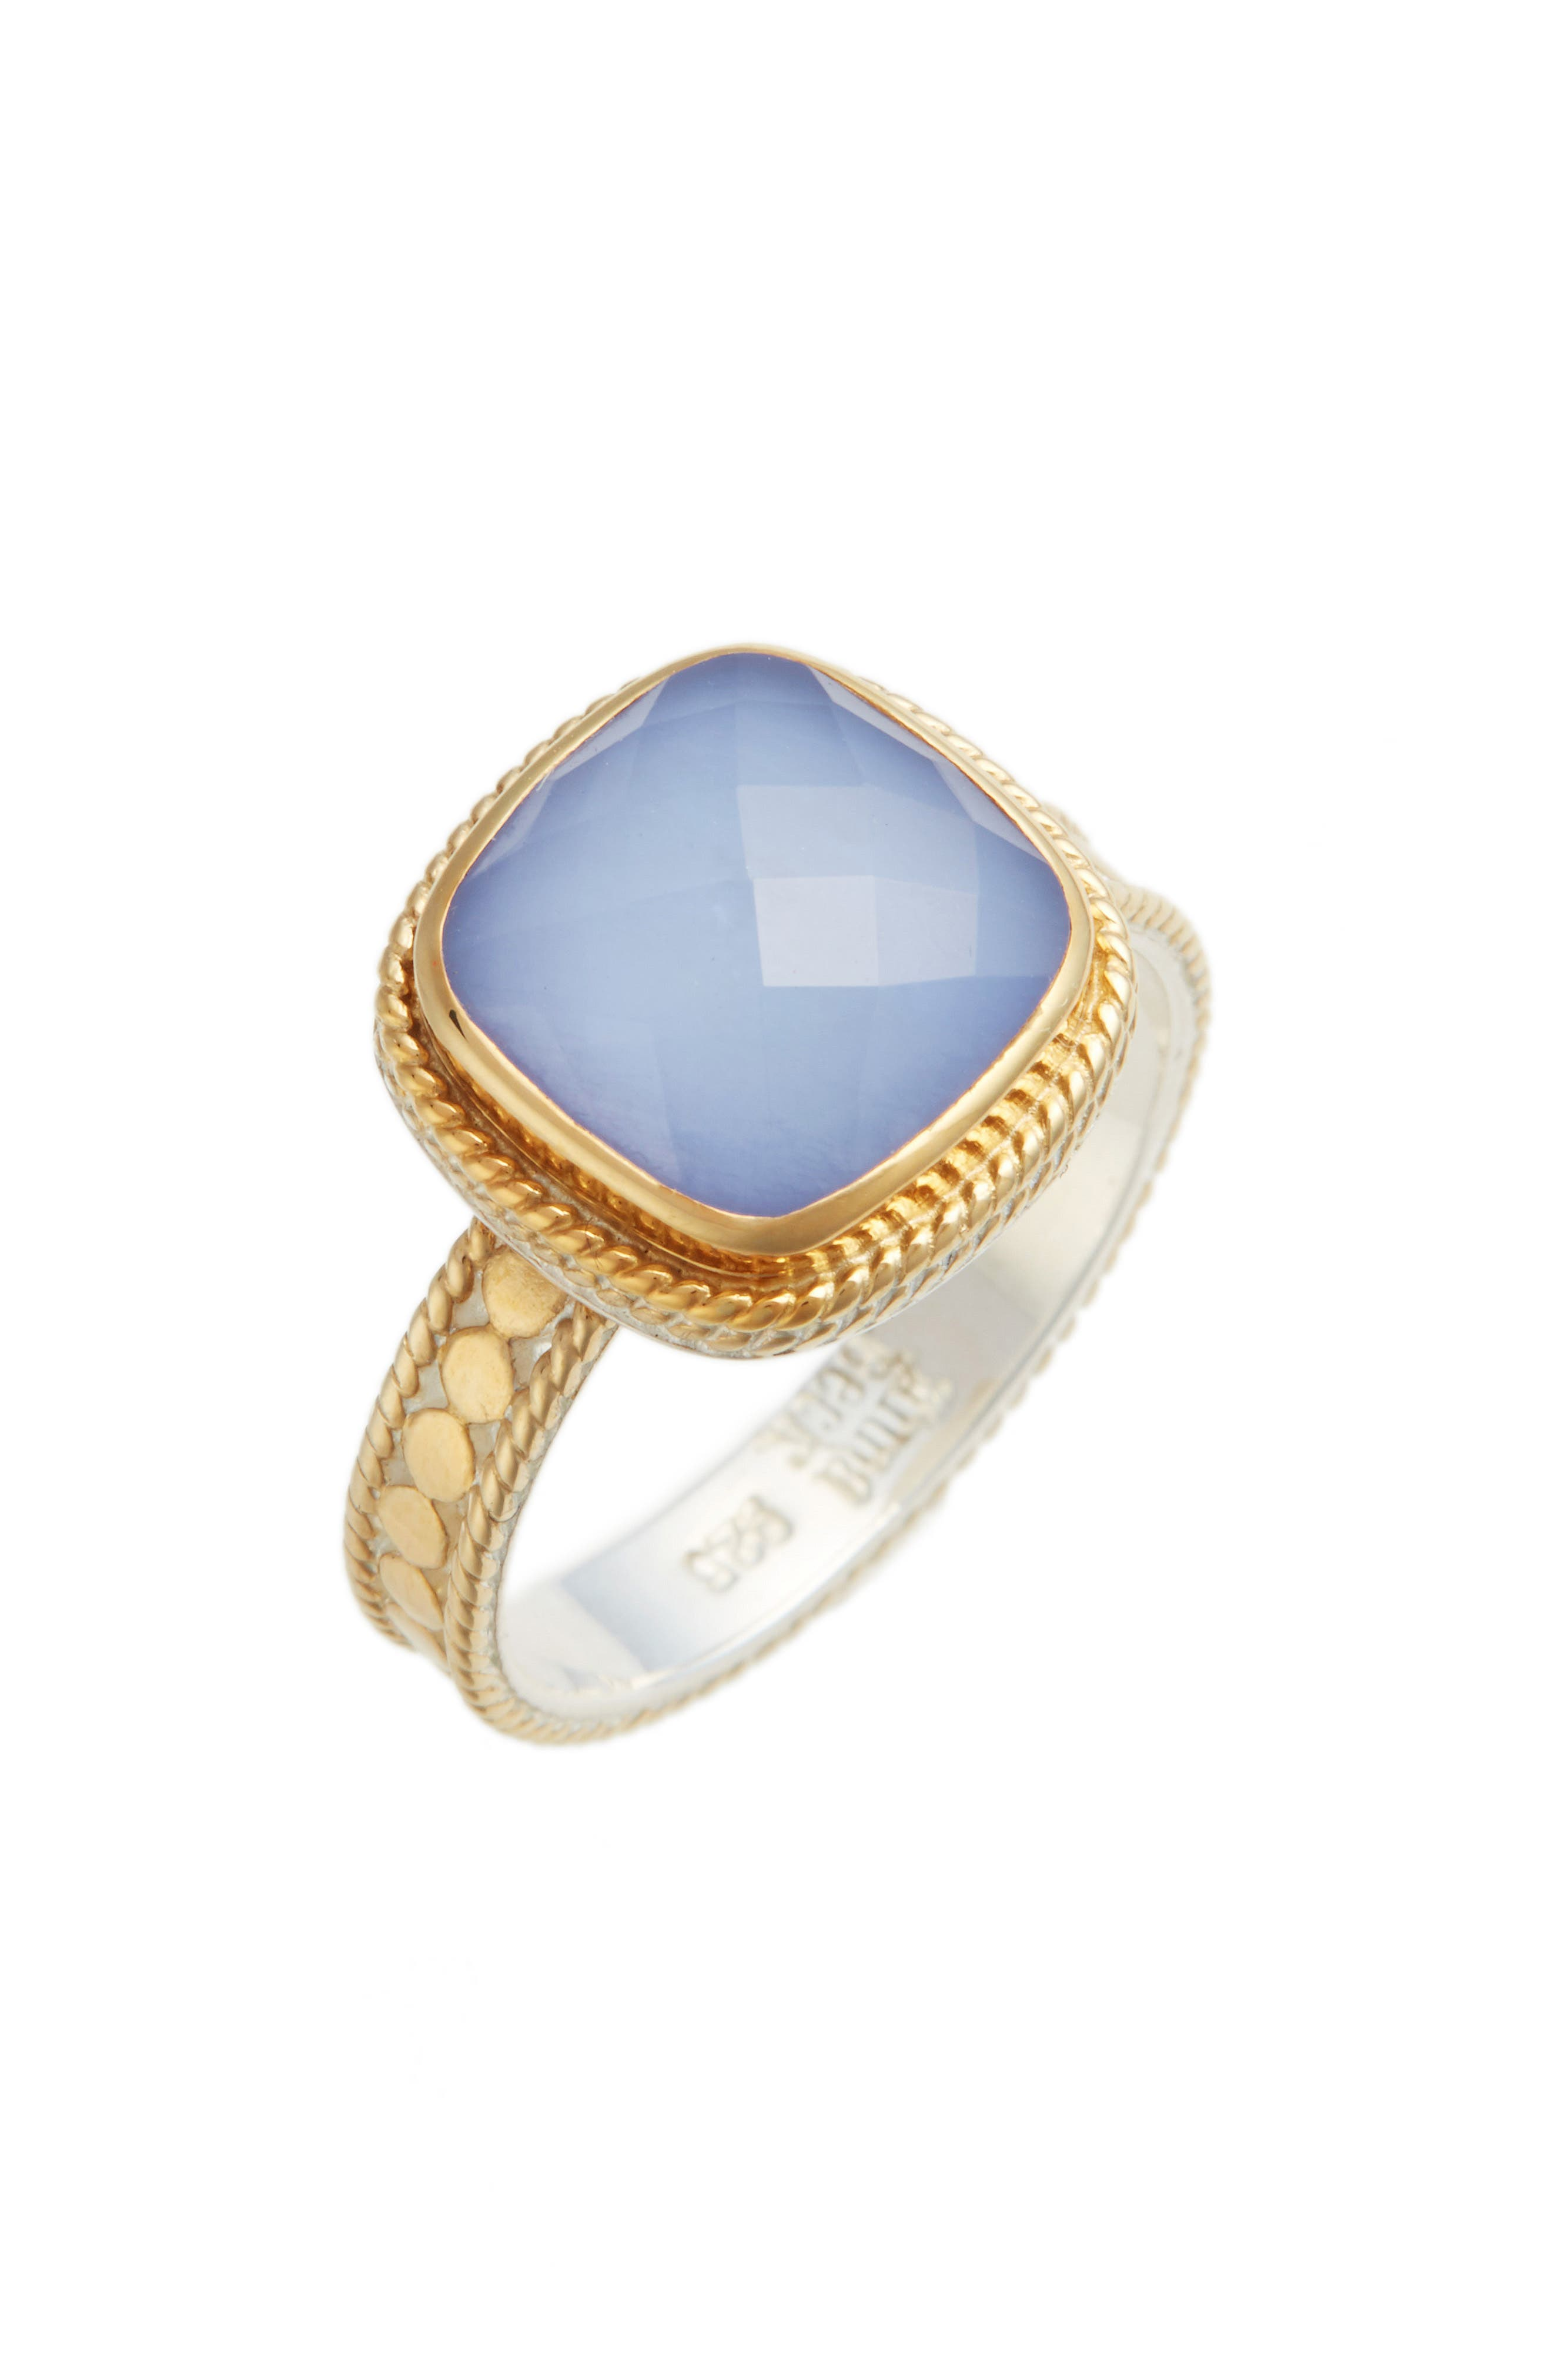 Blue Chalcedony Cushion Ring,                             Main thumbnail 1, color,                             400